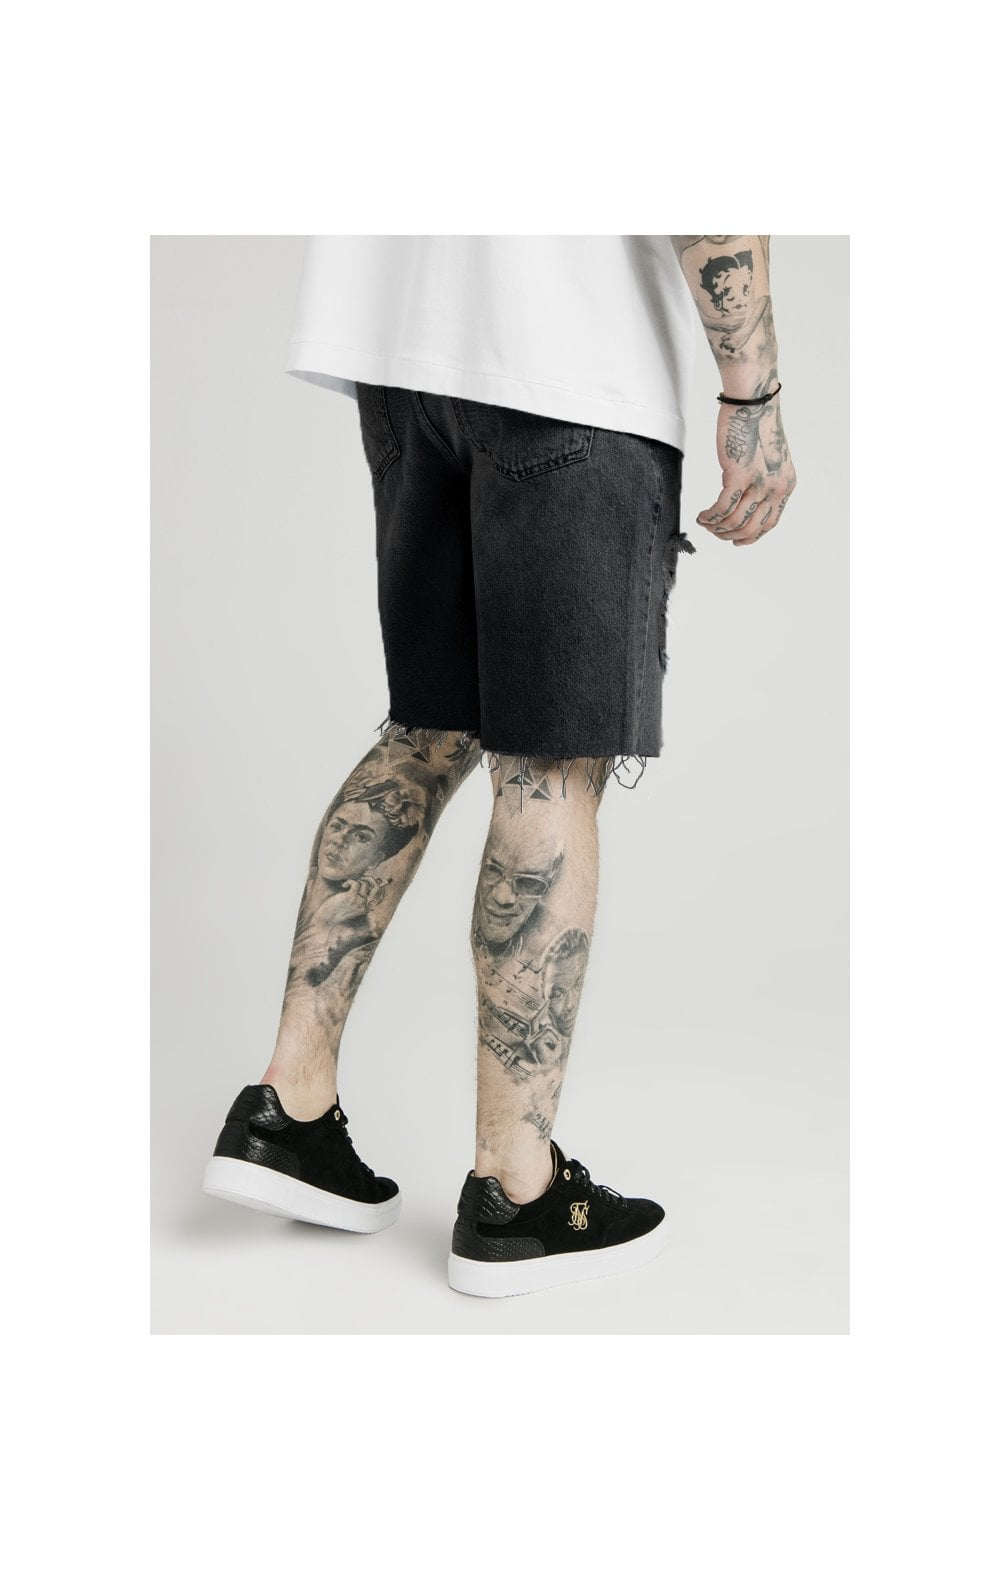 Load image into Gallery viewer, SikSilk x Dani Alves Loose Fit Denim Shorts - Black (2)